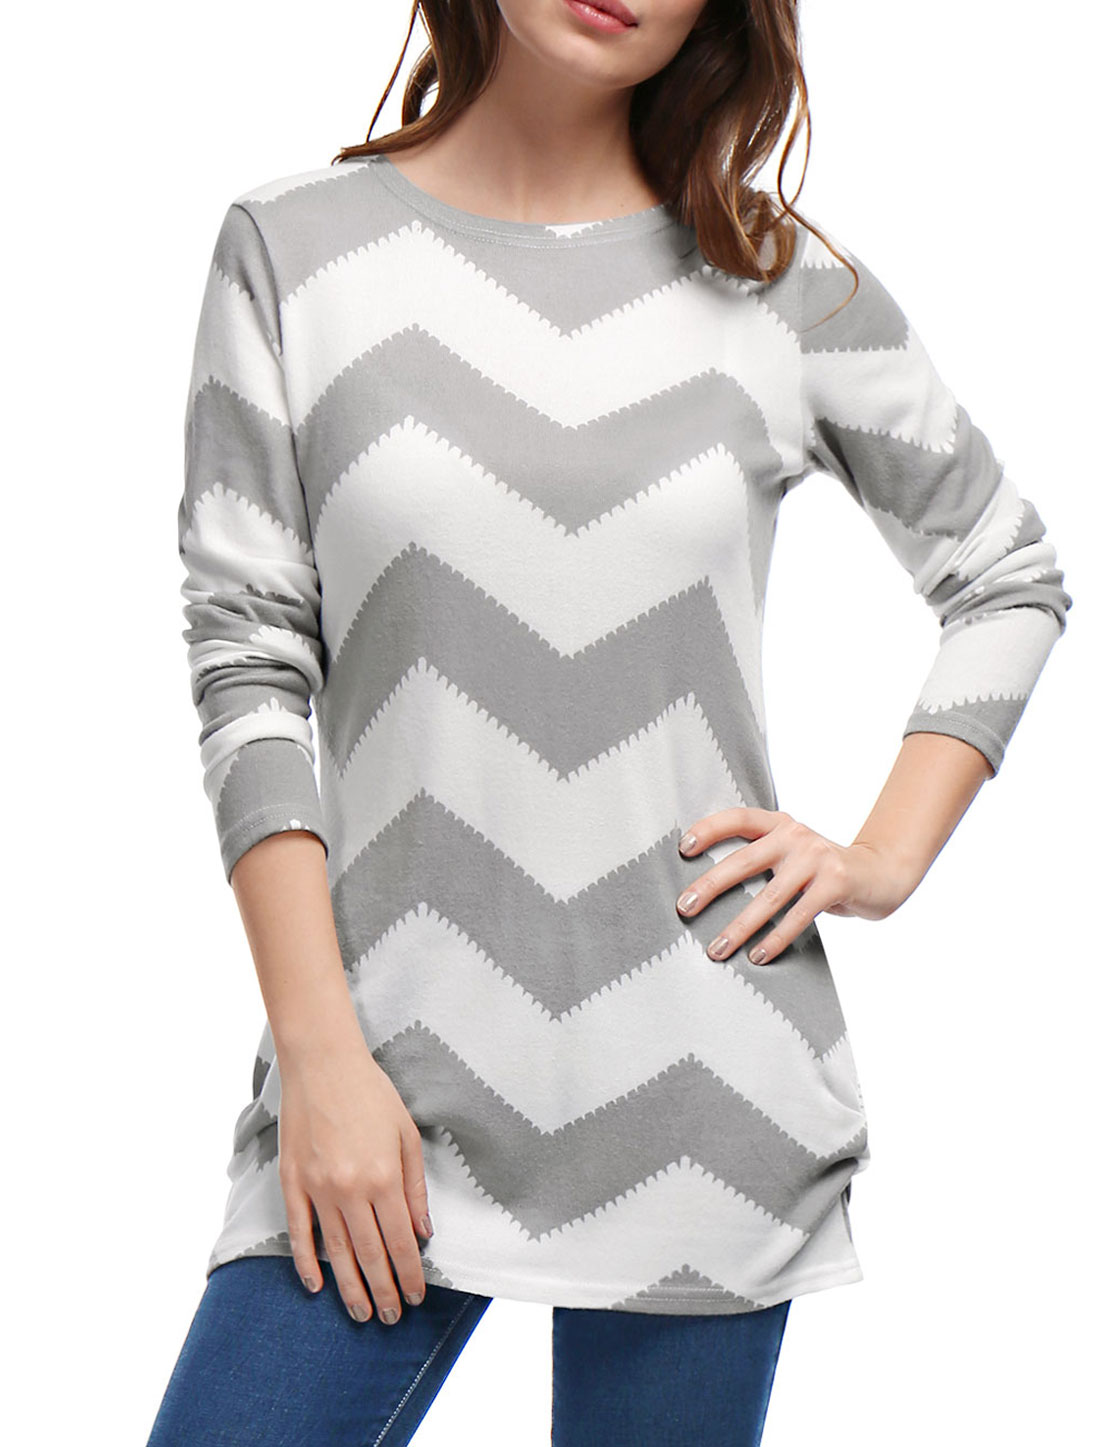 Woman Zig-Zag Pattern Knitted Relax Fit Tunic Top Gray White XL